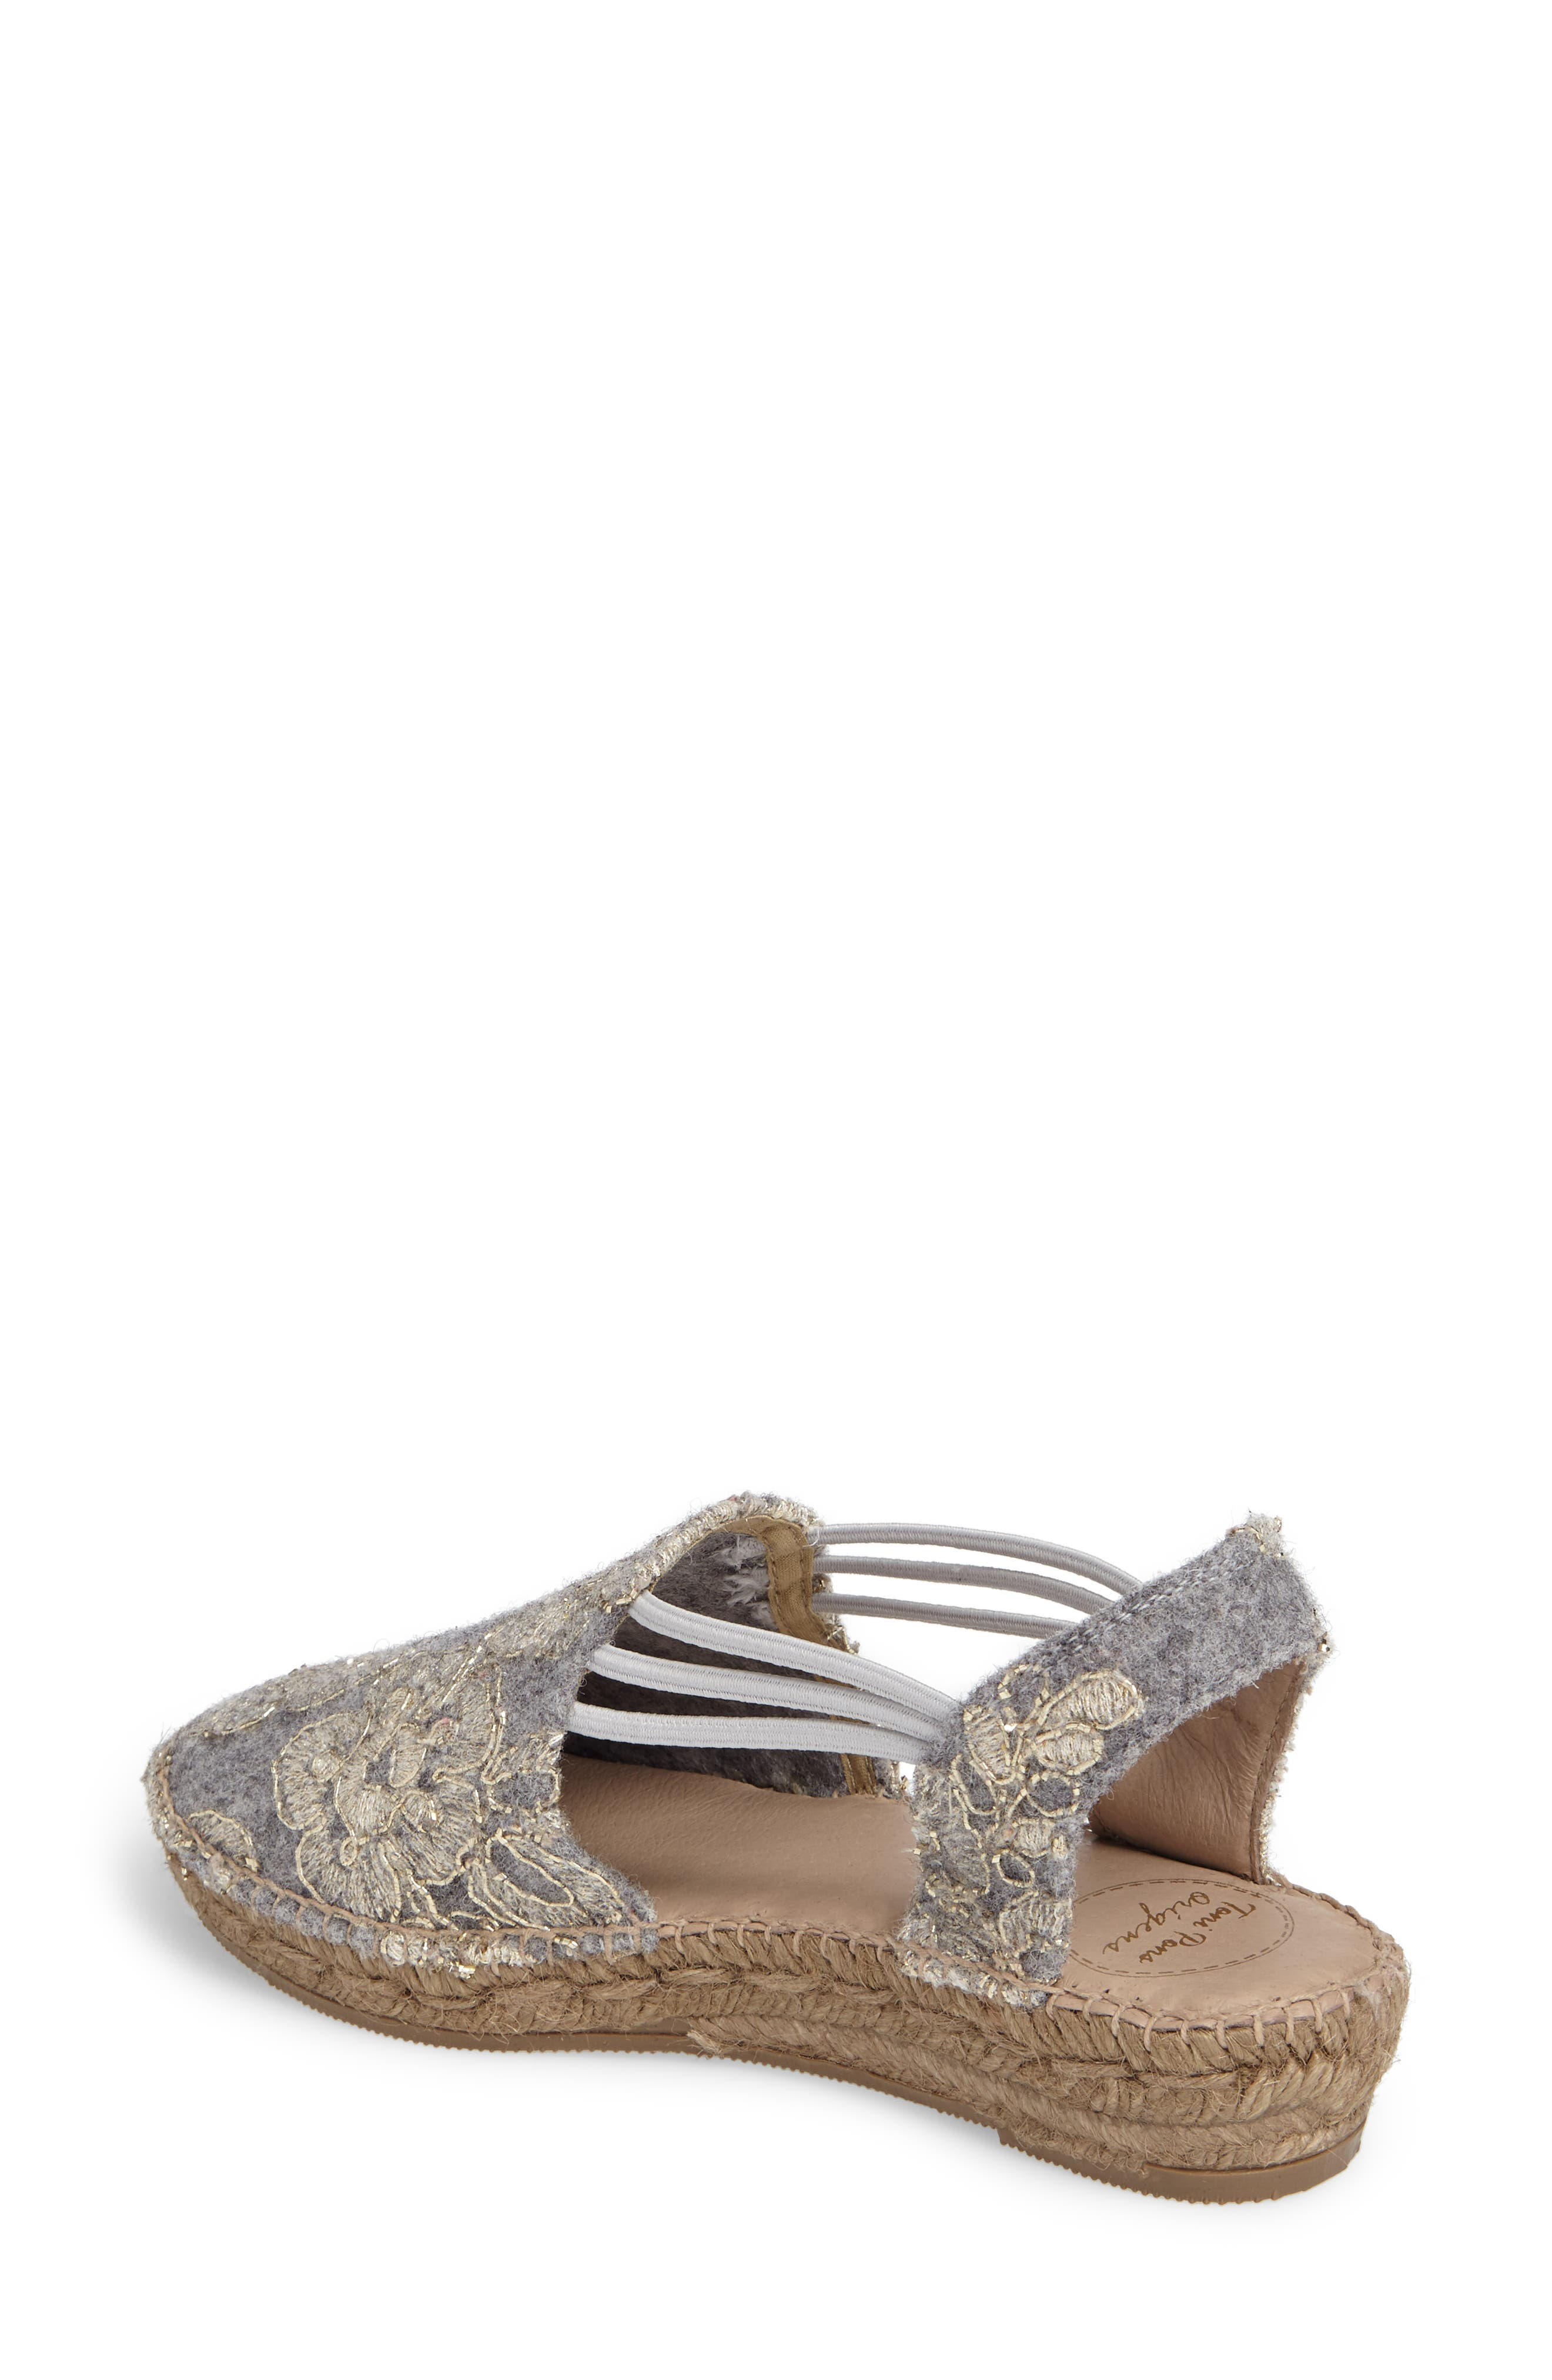 Metz Embroidered Espadrille Wedge,                             Alternate thumbnail 2, color,                             020